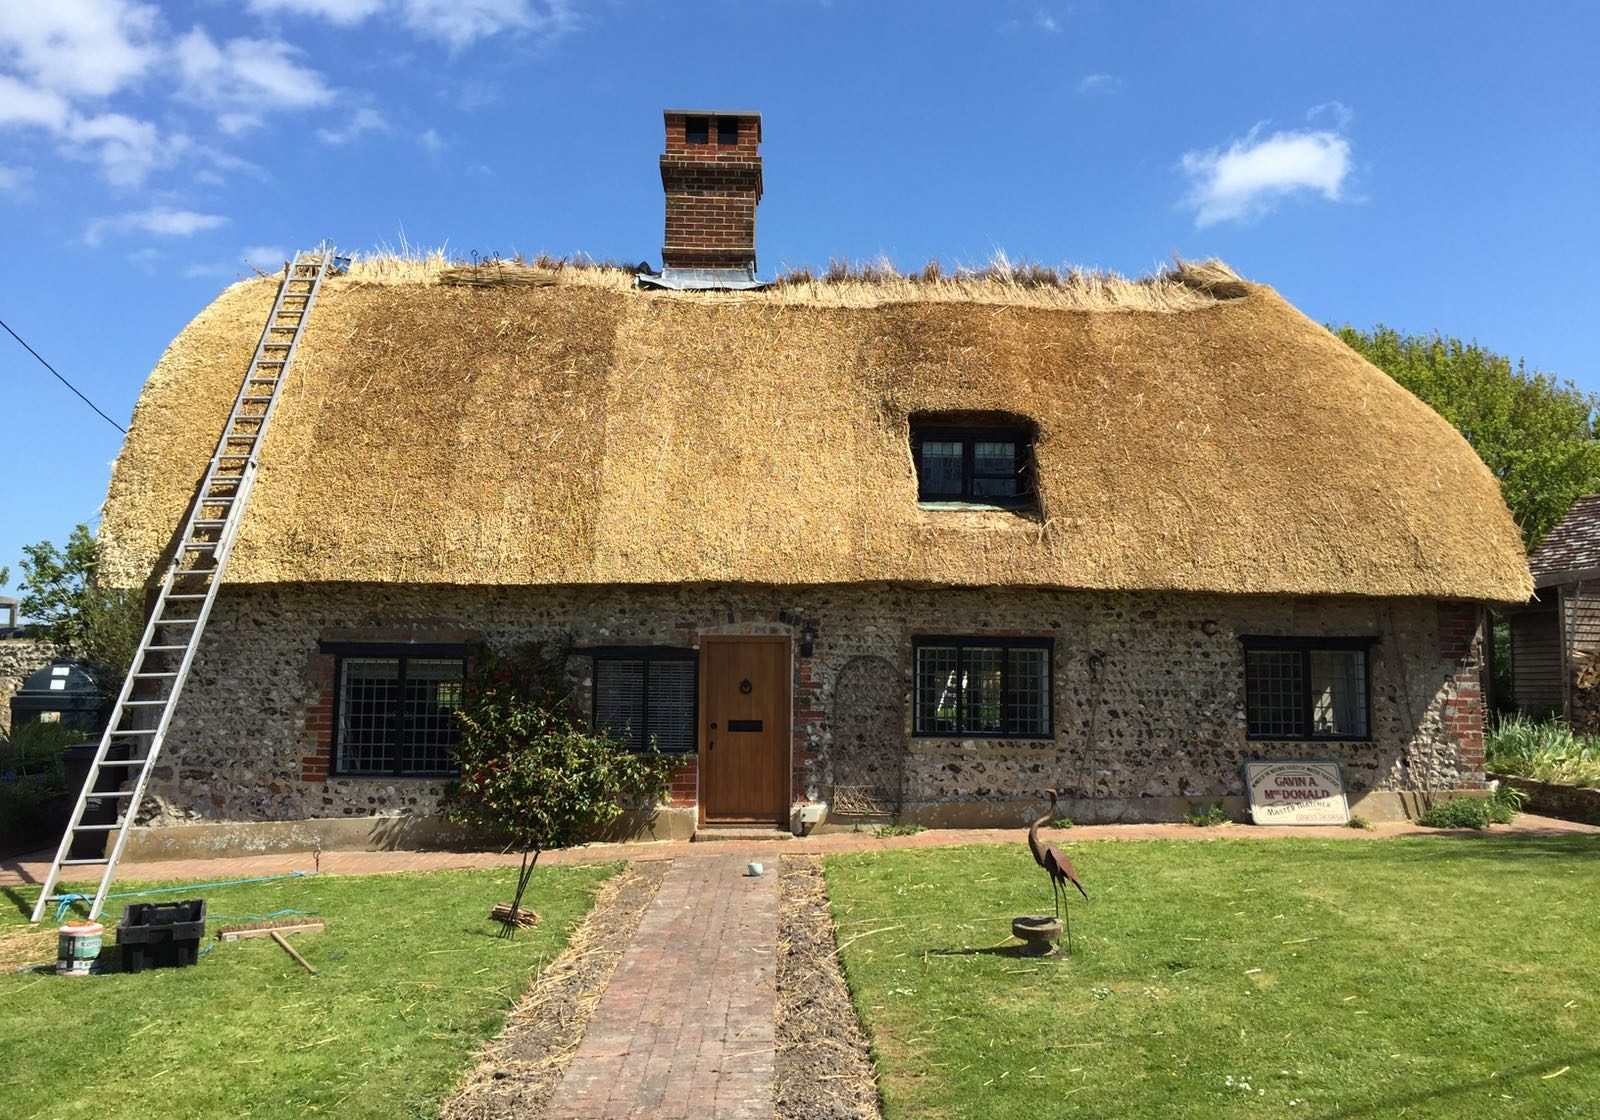 Rethatch in combed wheat reed